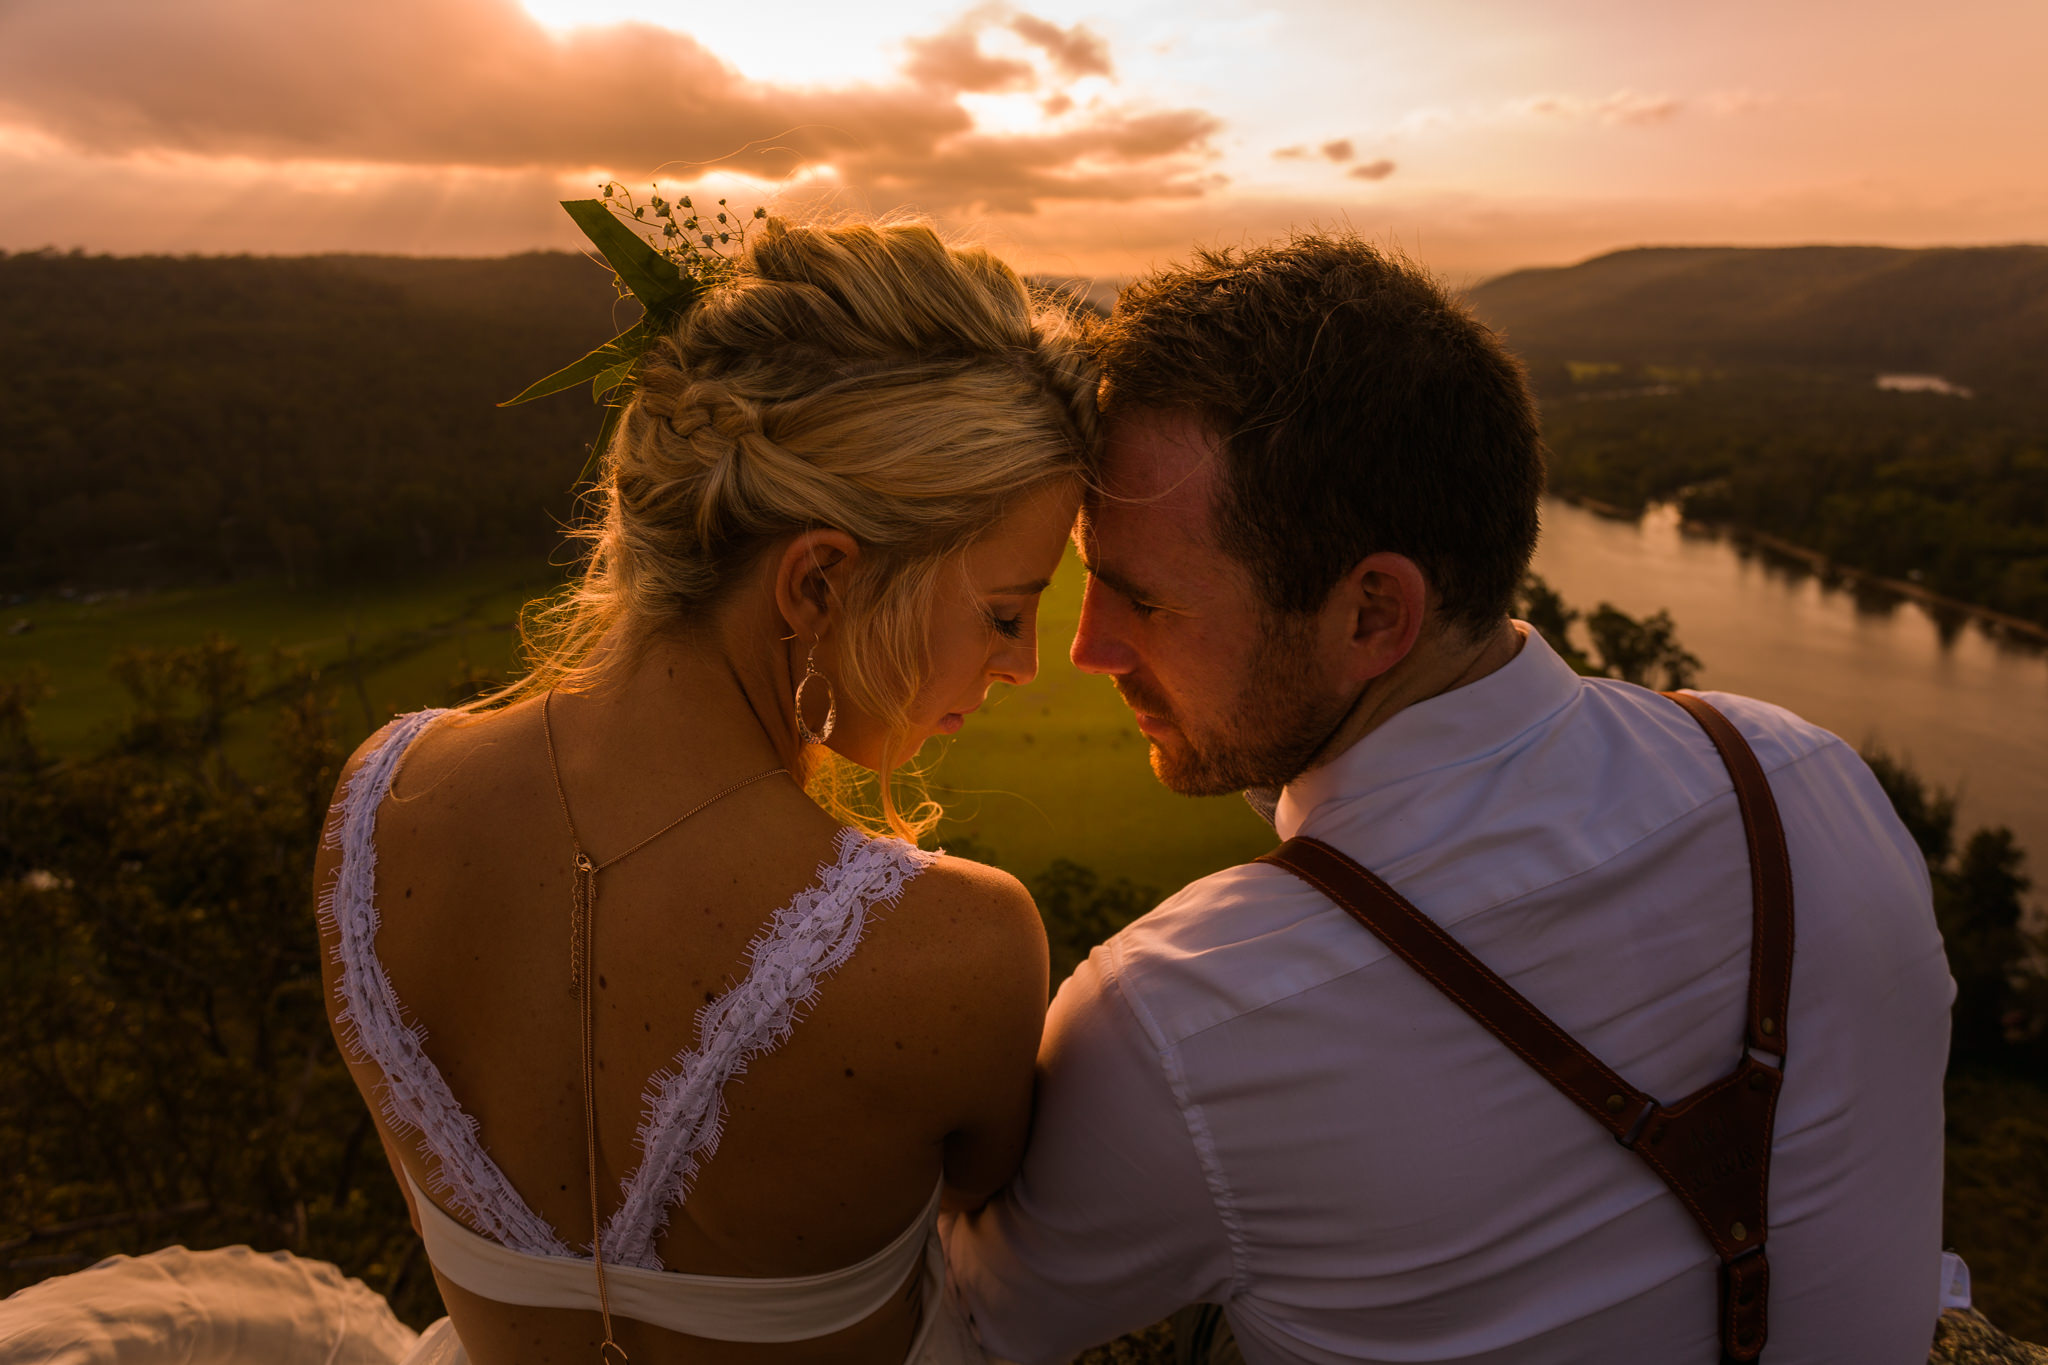 Two newlyweds sitting on top of a cliff, foreheads together looking into eachothers eyes with an orange sunset and river in the background.